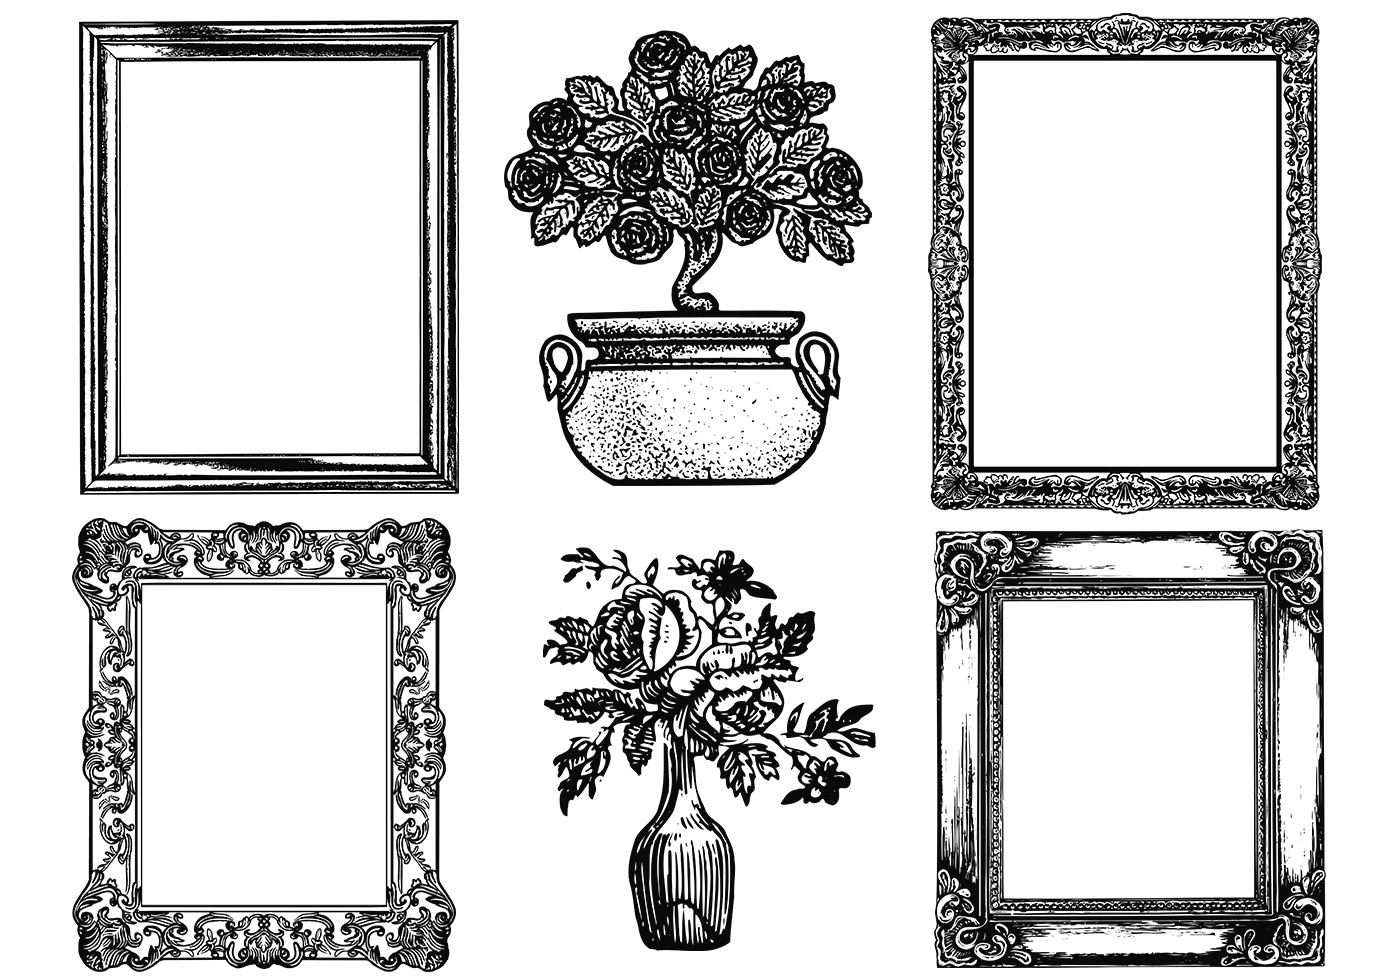 Etched antique picture frame vector pack download free vector etched antique picture frame vector pack download free vector art stock graphics images jeuxipadfo Image collections